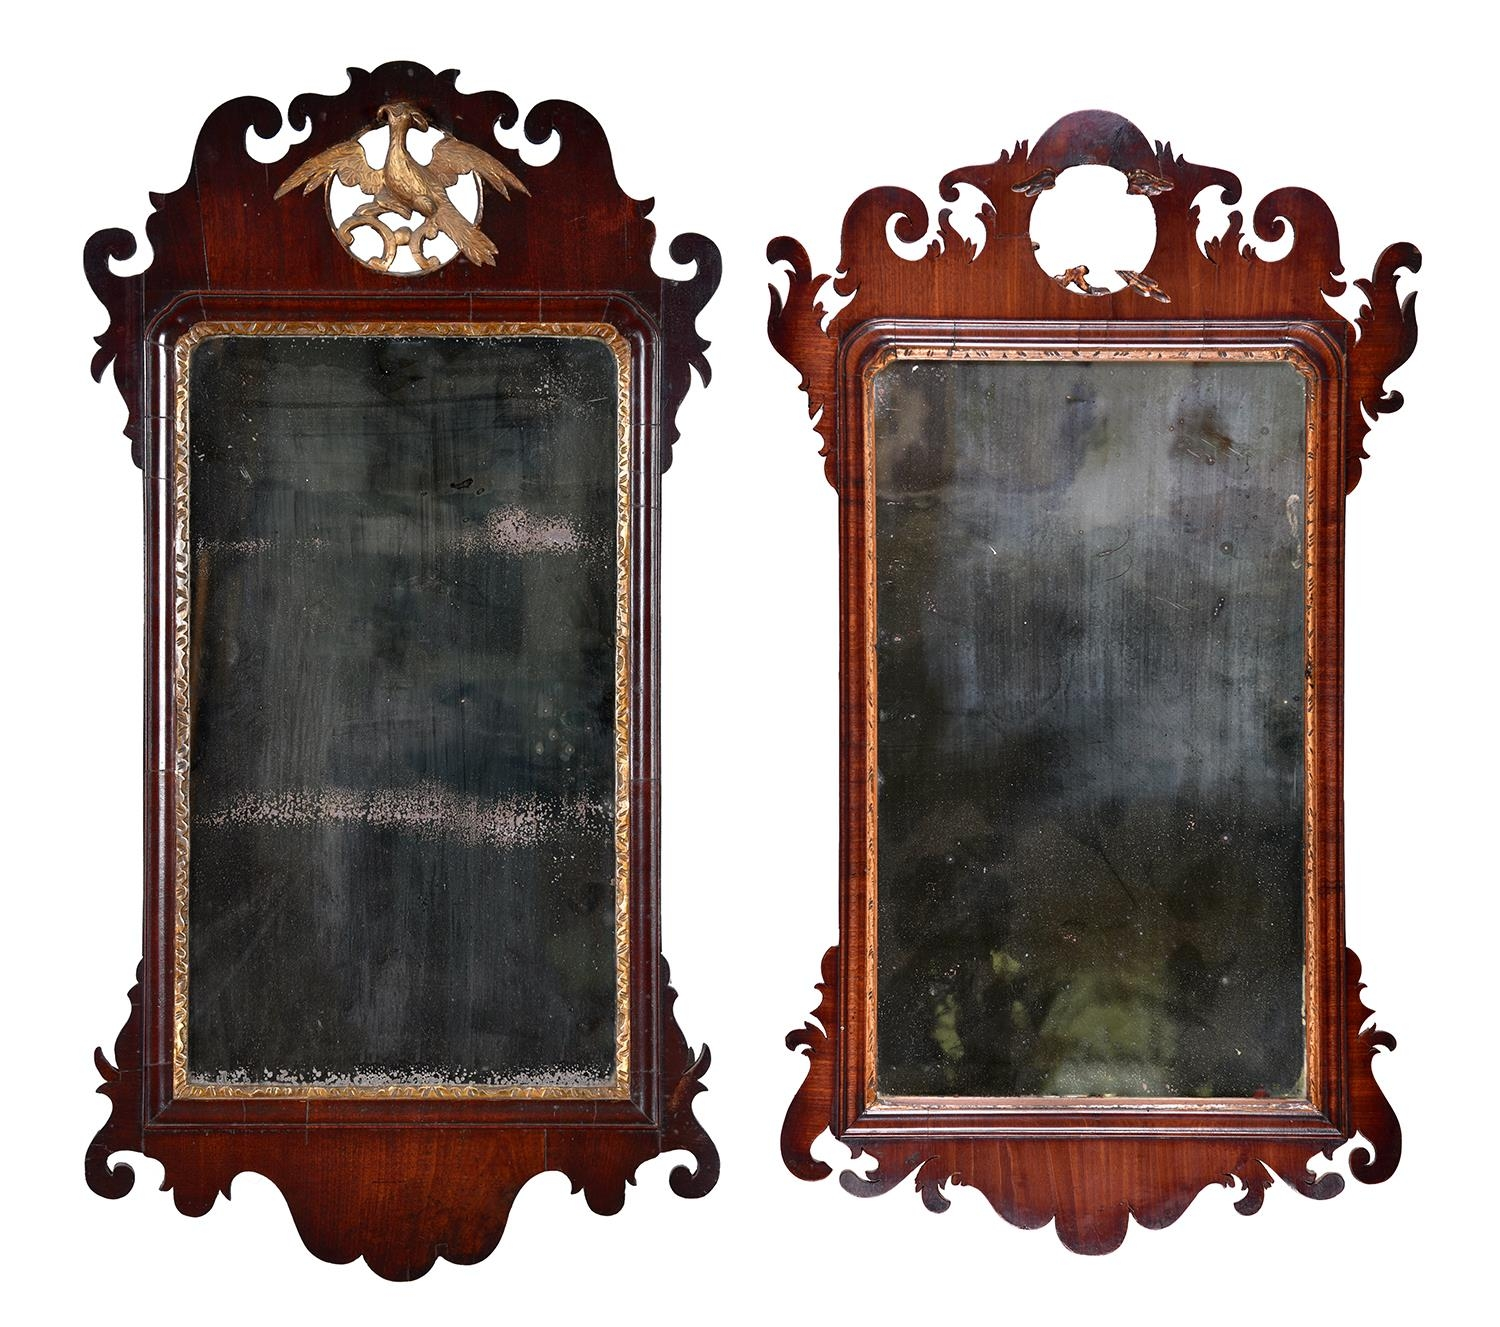 A Victorian parcel gilt mahogany fretted frame mirror, in George II style, crested by a Ho-Ho